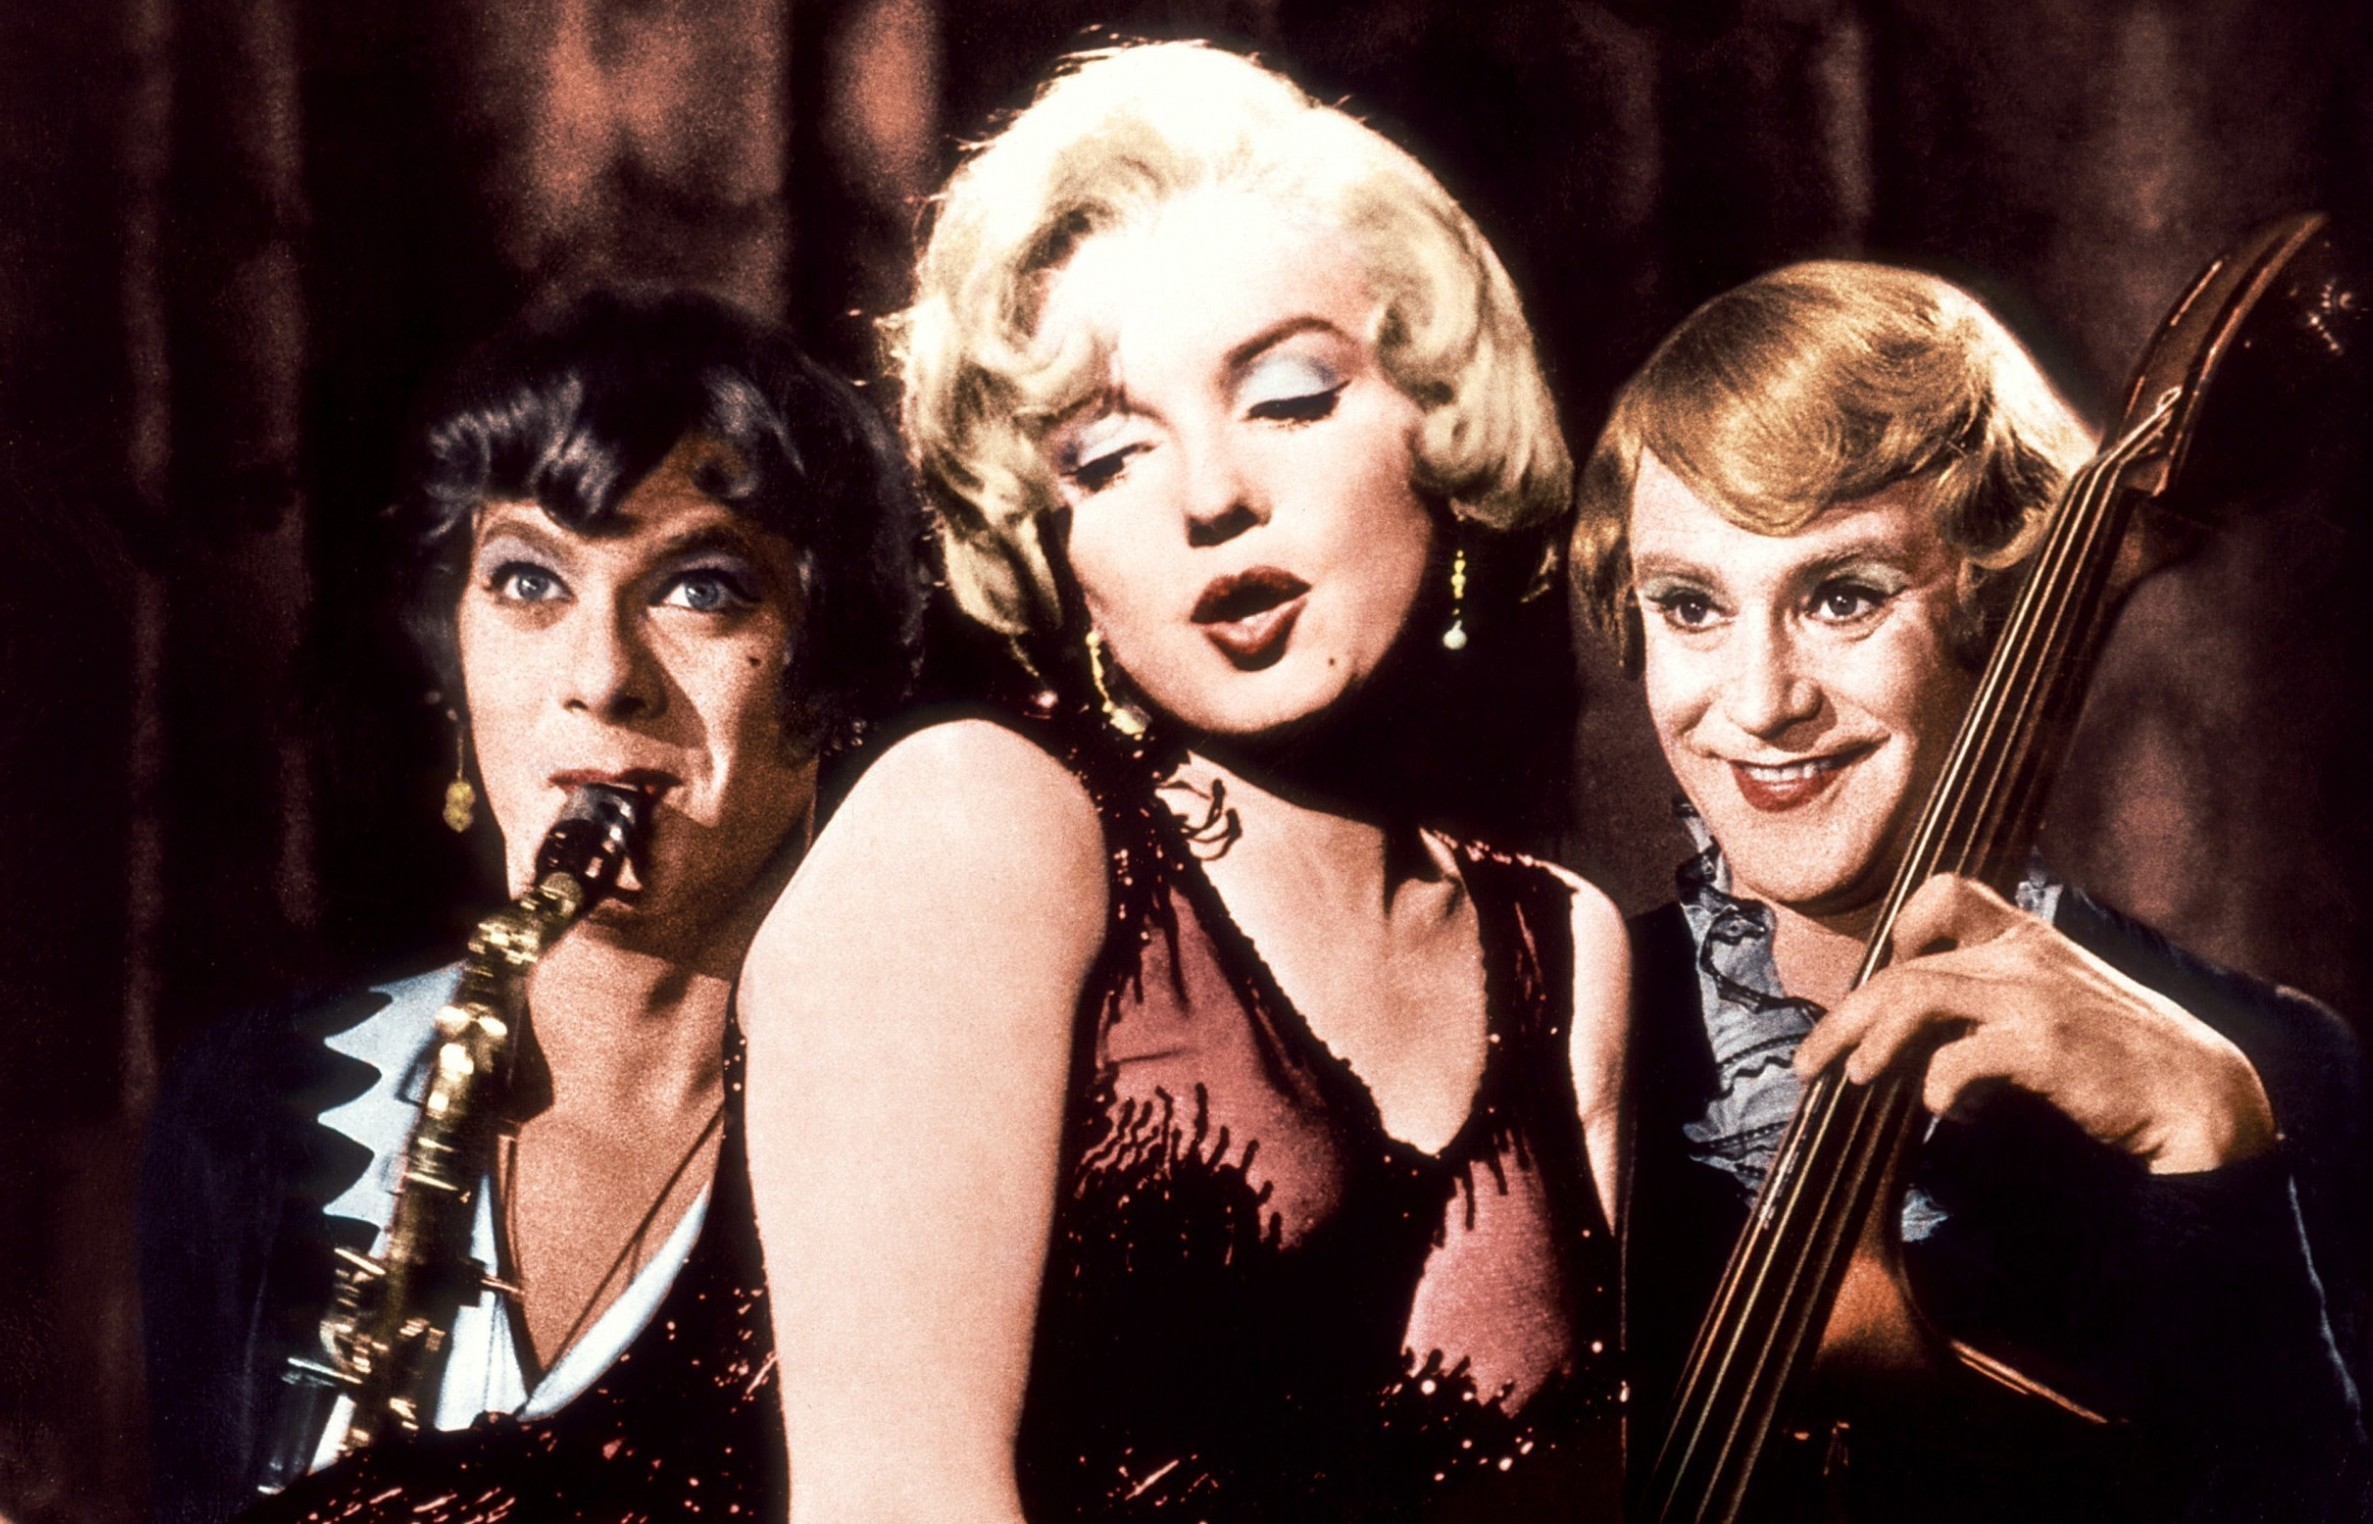 Tony Curtis, Marilyn Monrow and Jack Lemmon in Some Like it Hot (Allstar/UNITED ARTISTS)